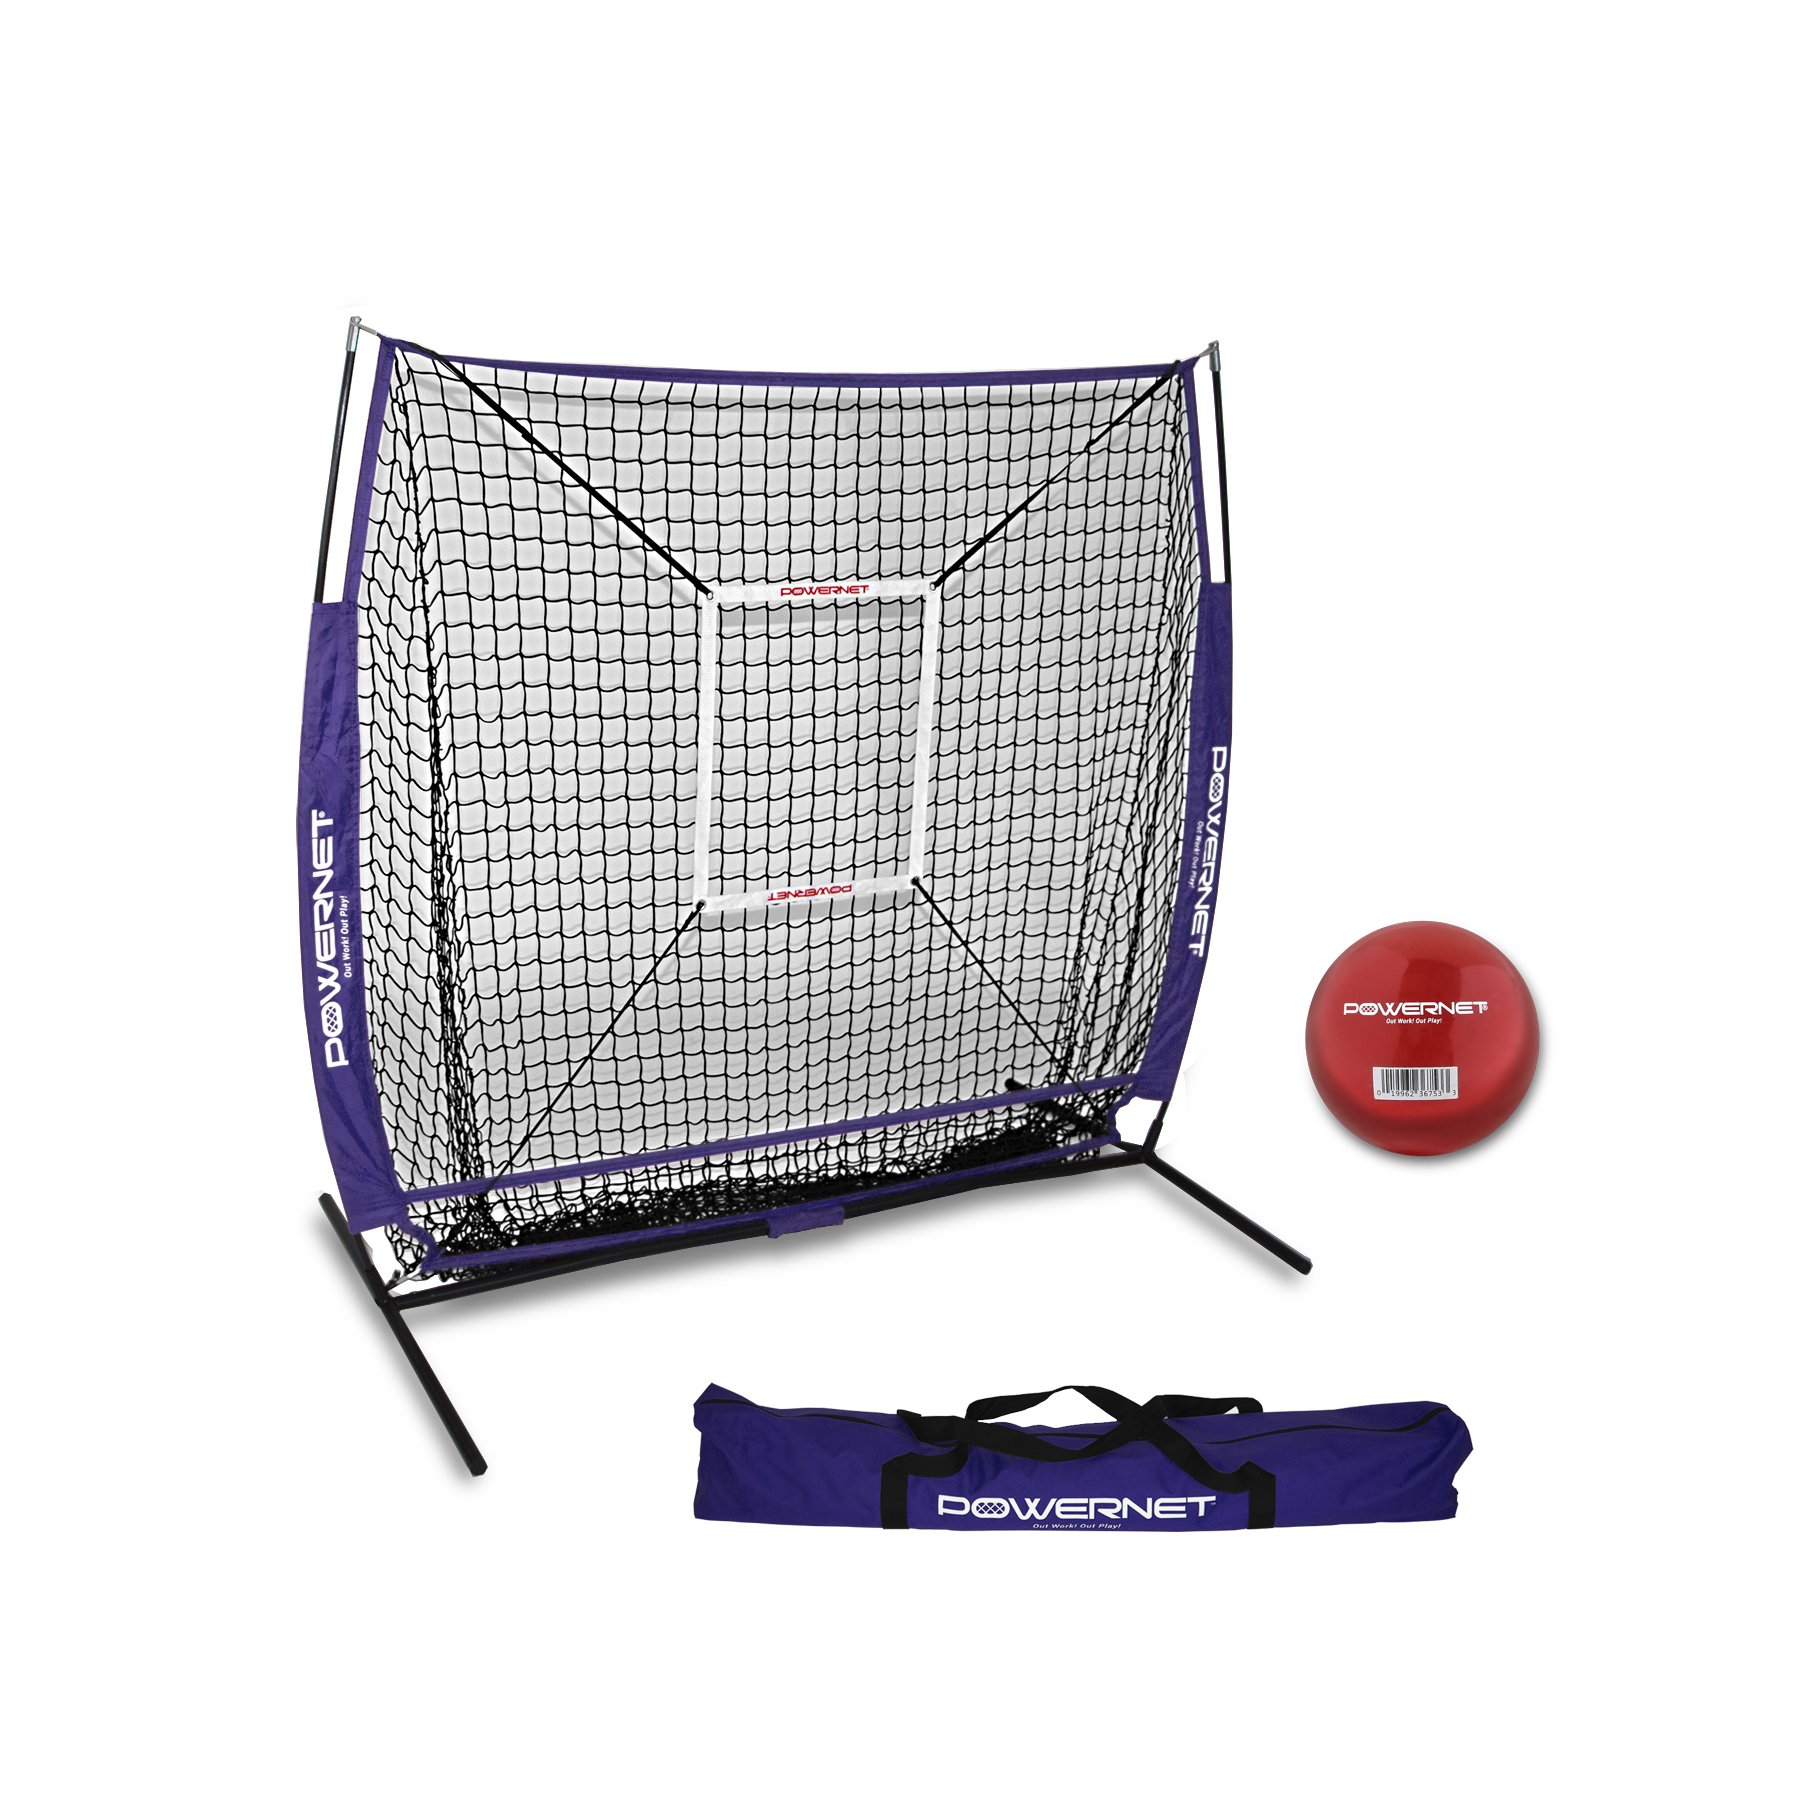 PowerNet 5x5 Practice Net + Strike Zone + Weighted Training Ball Bundle (Purple) | Baseball Softball Coaching Aid | Compact Lightweight Ultra Portable | Team Color | Batting Screen by PowerNet